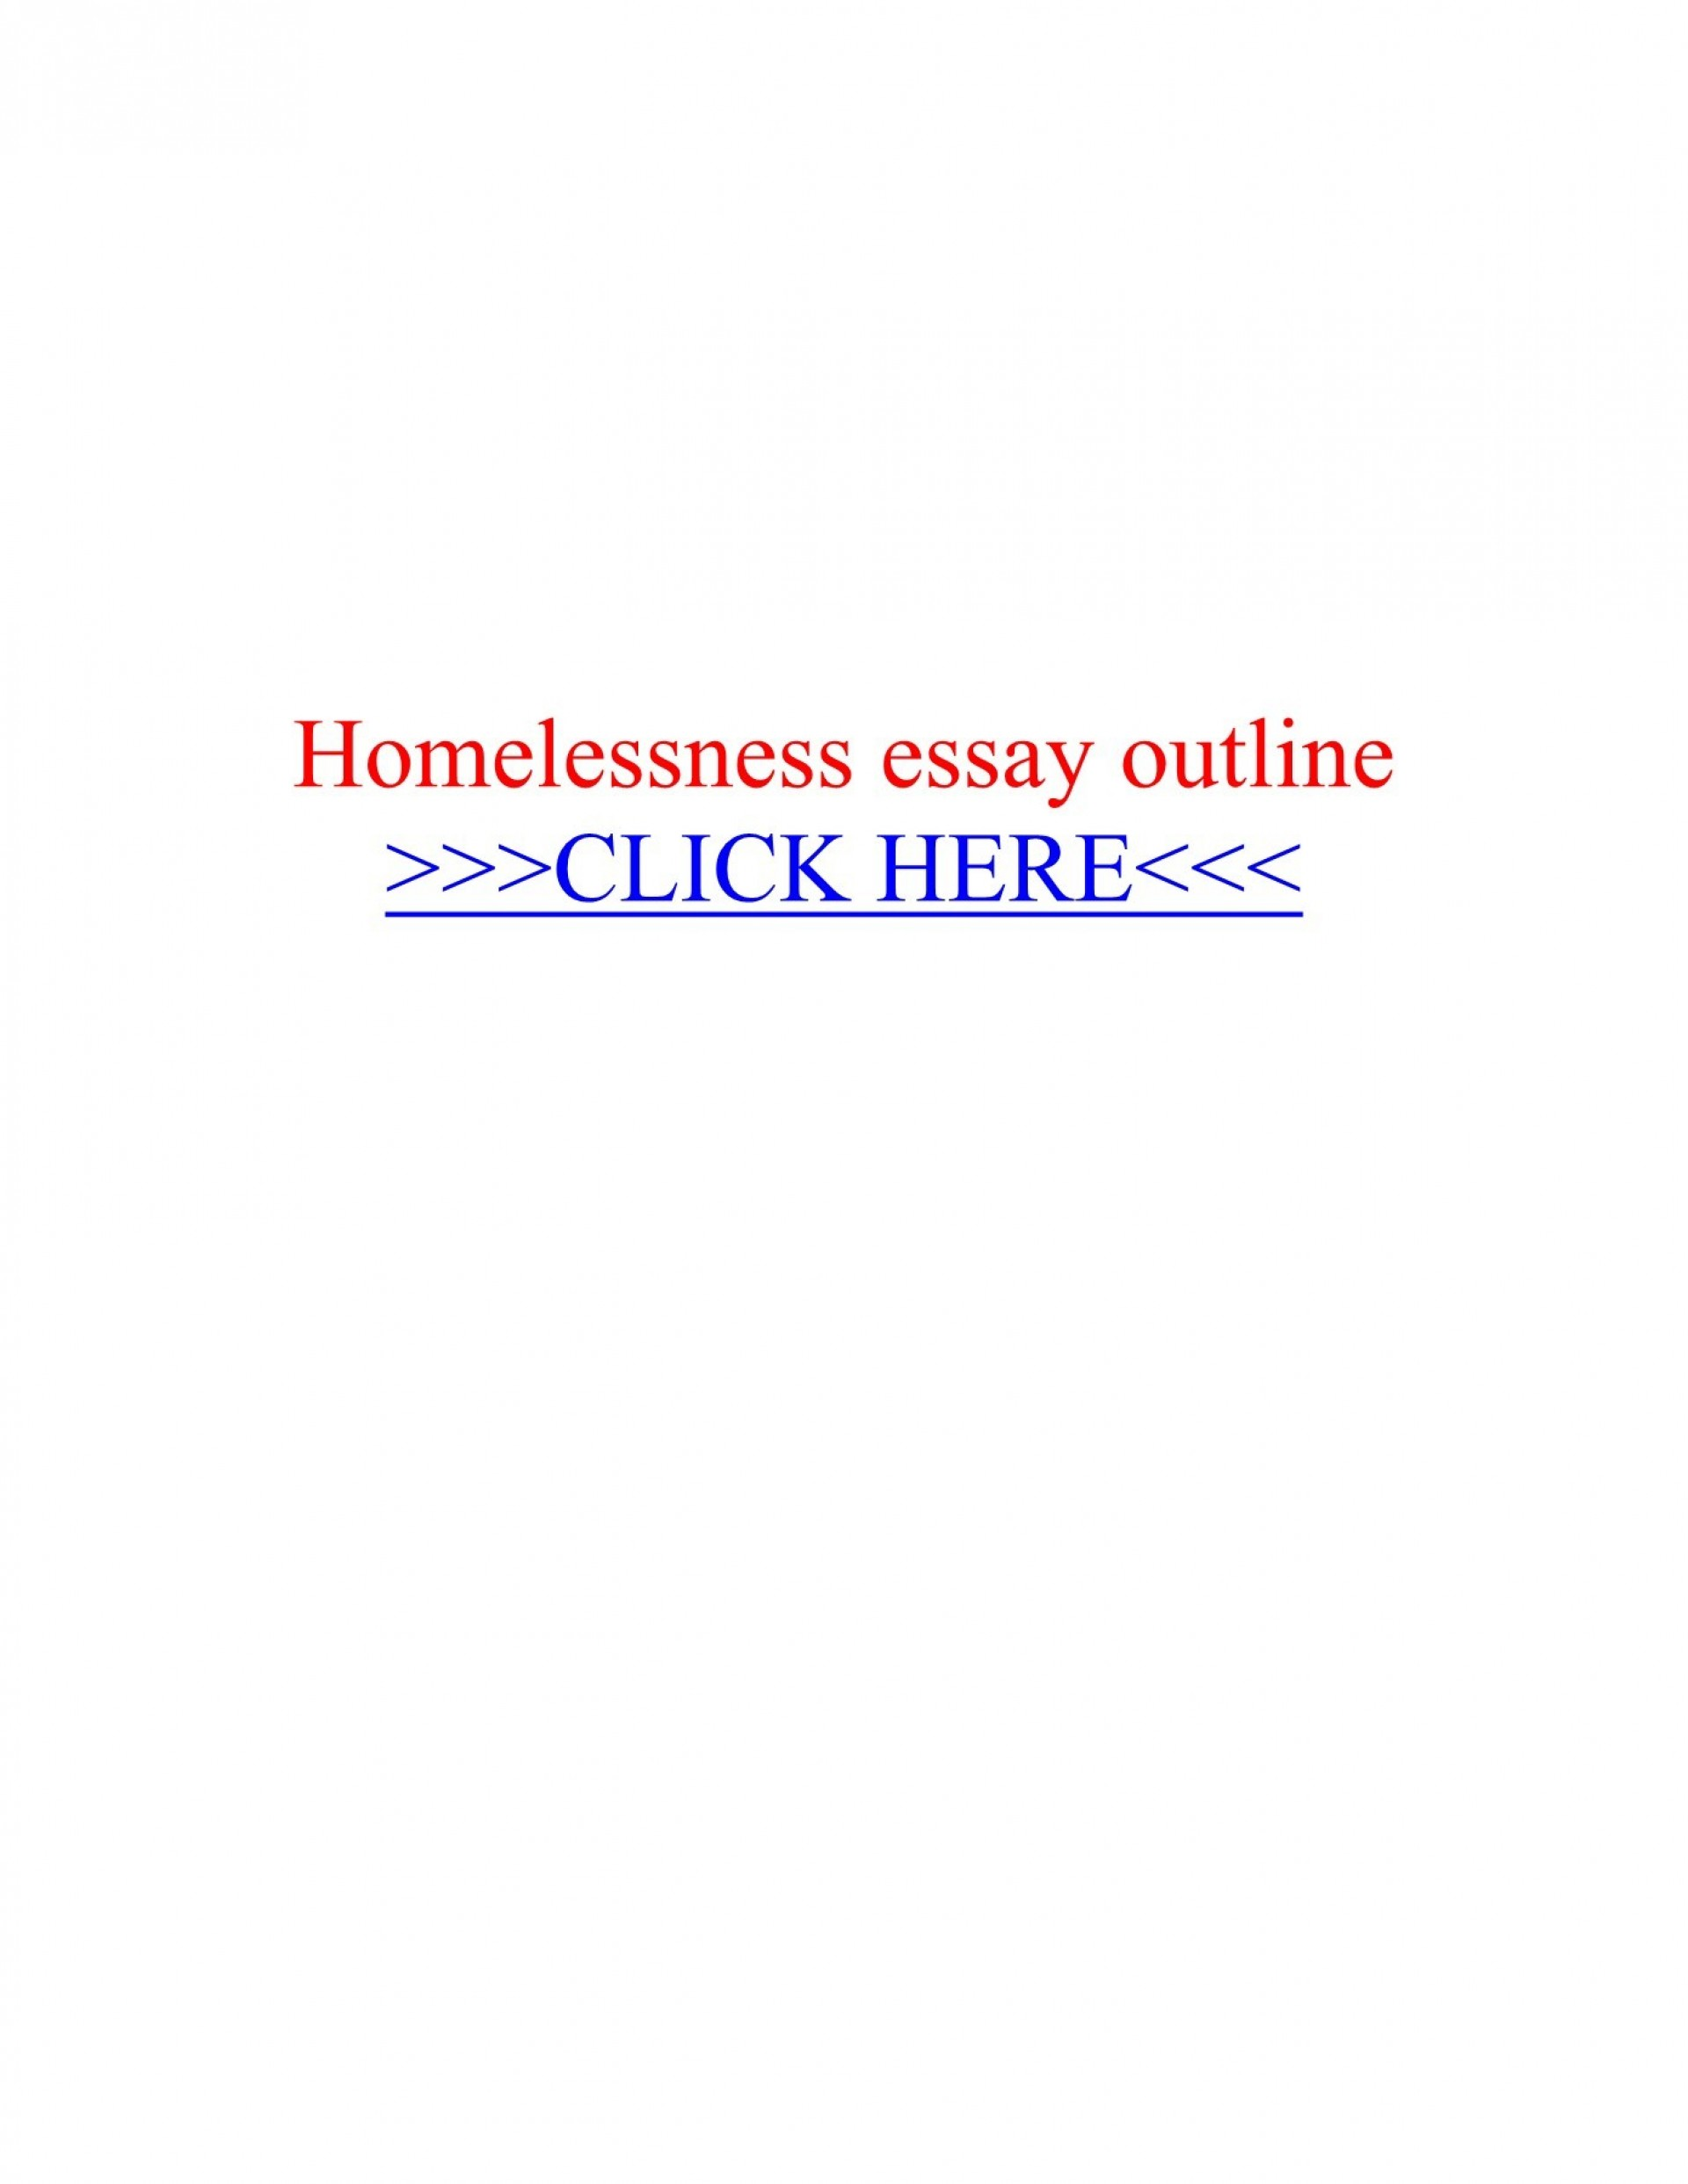 013 Homelessness Essay Beautiful Topics Outline Conclusion 1920